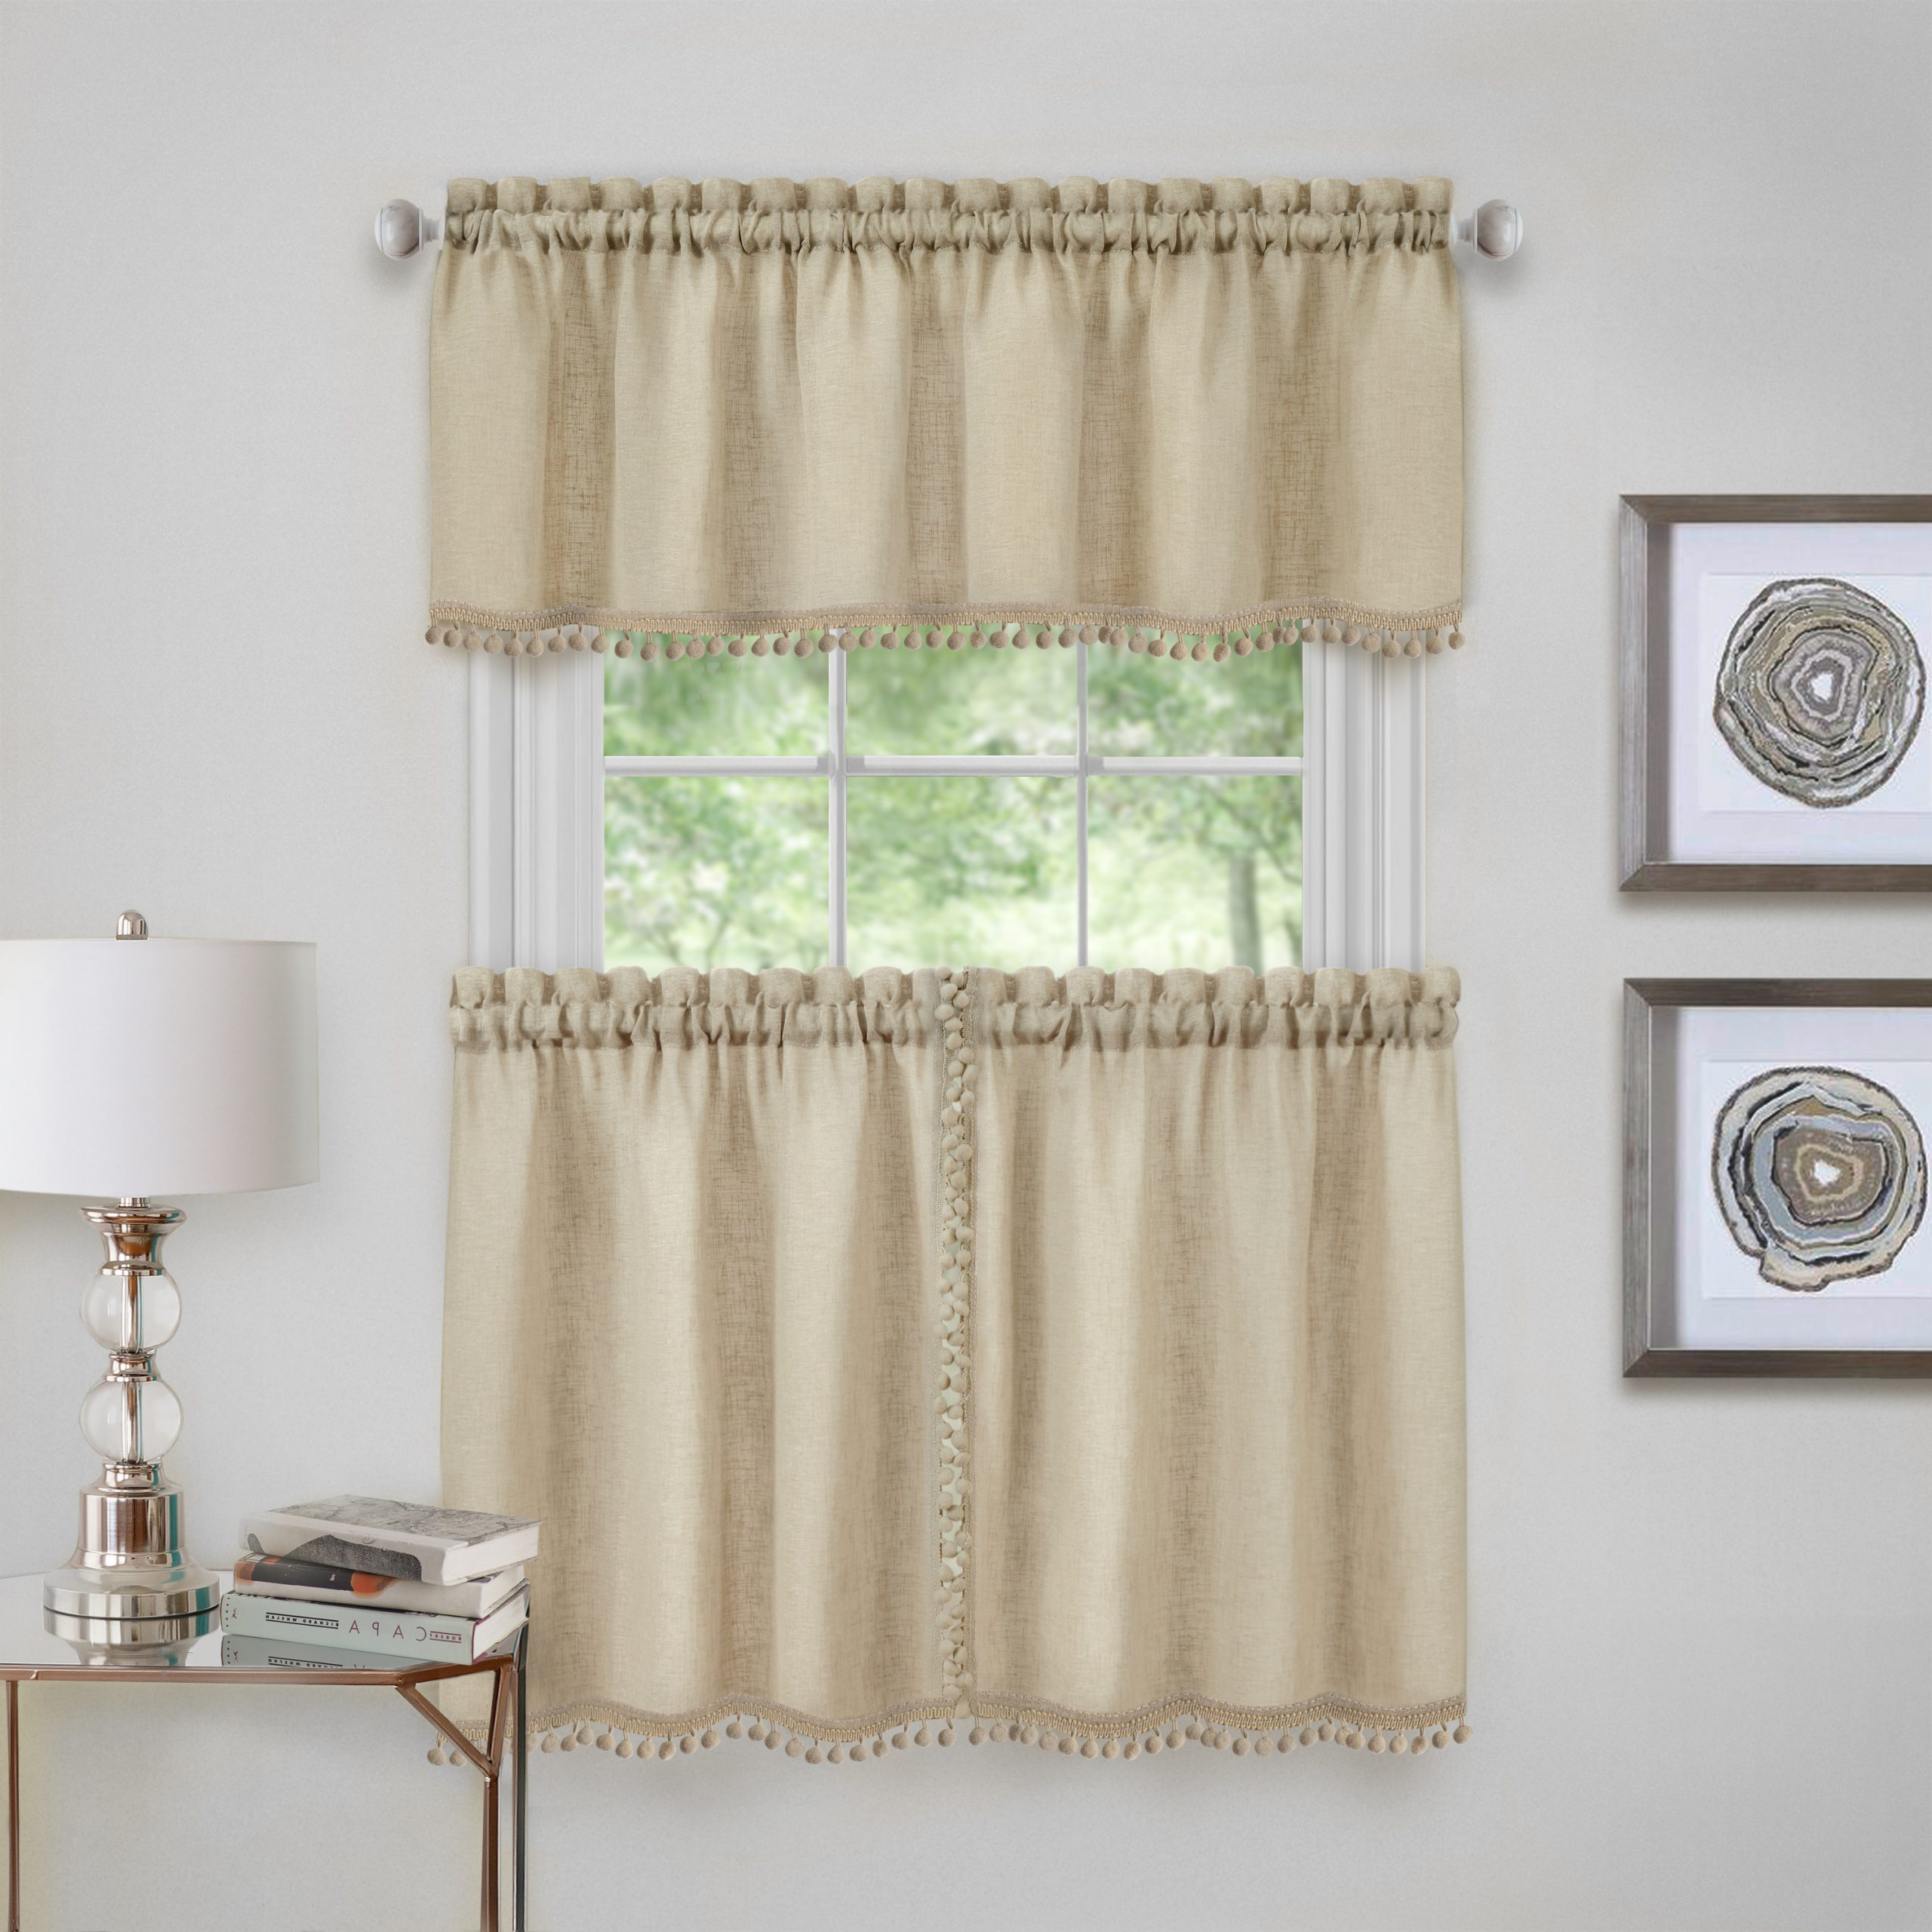 Newest Achim Wallace Window Kitchen Curtain Tier Pair And Valance Set – 58x24 – Linen Intended For Coastal Tier And Valance Window Curtain Sets (View 12 of 20)